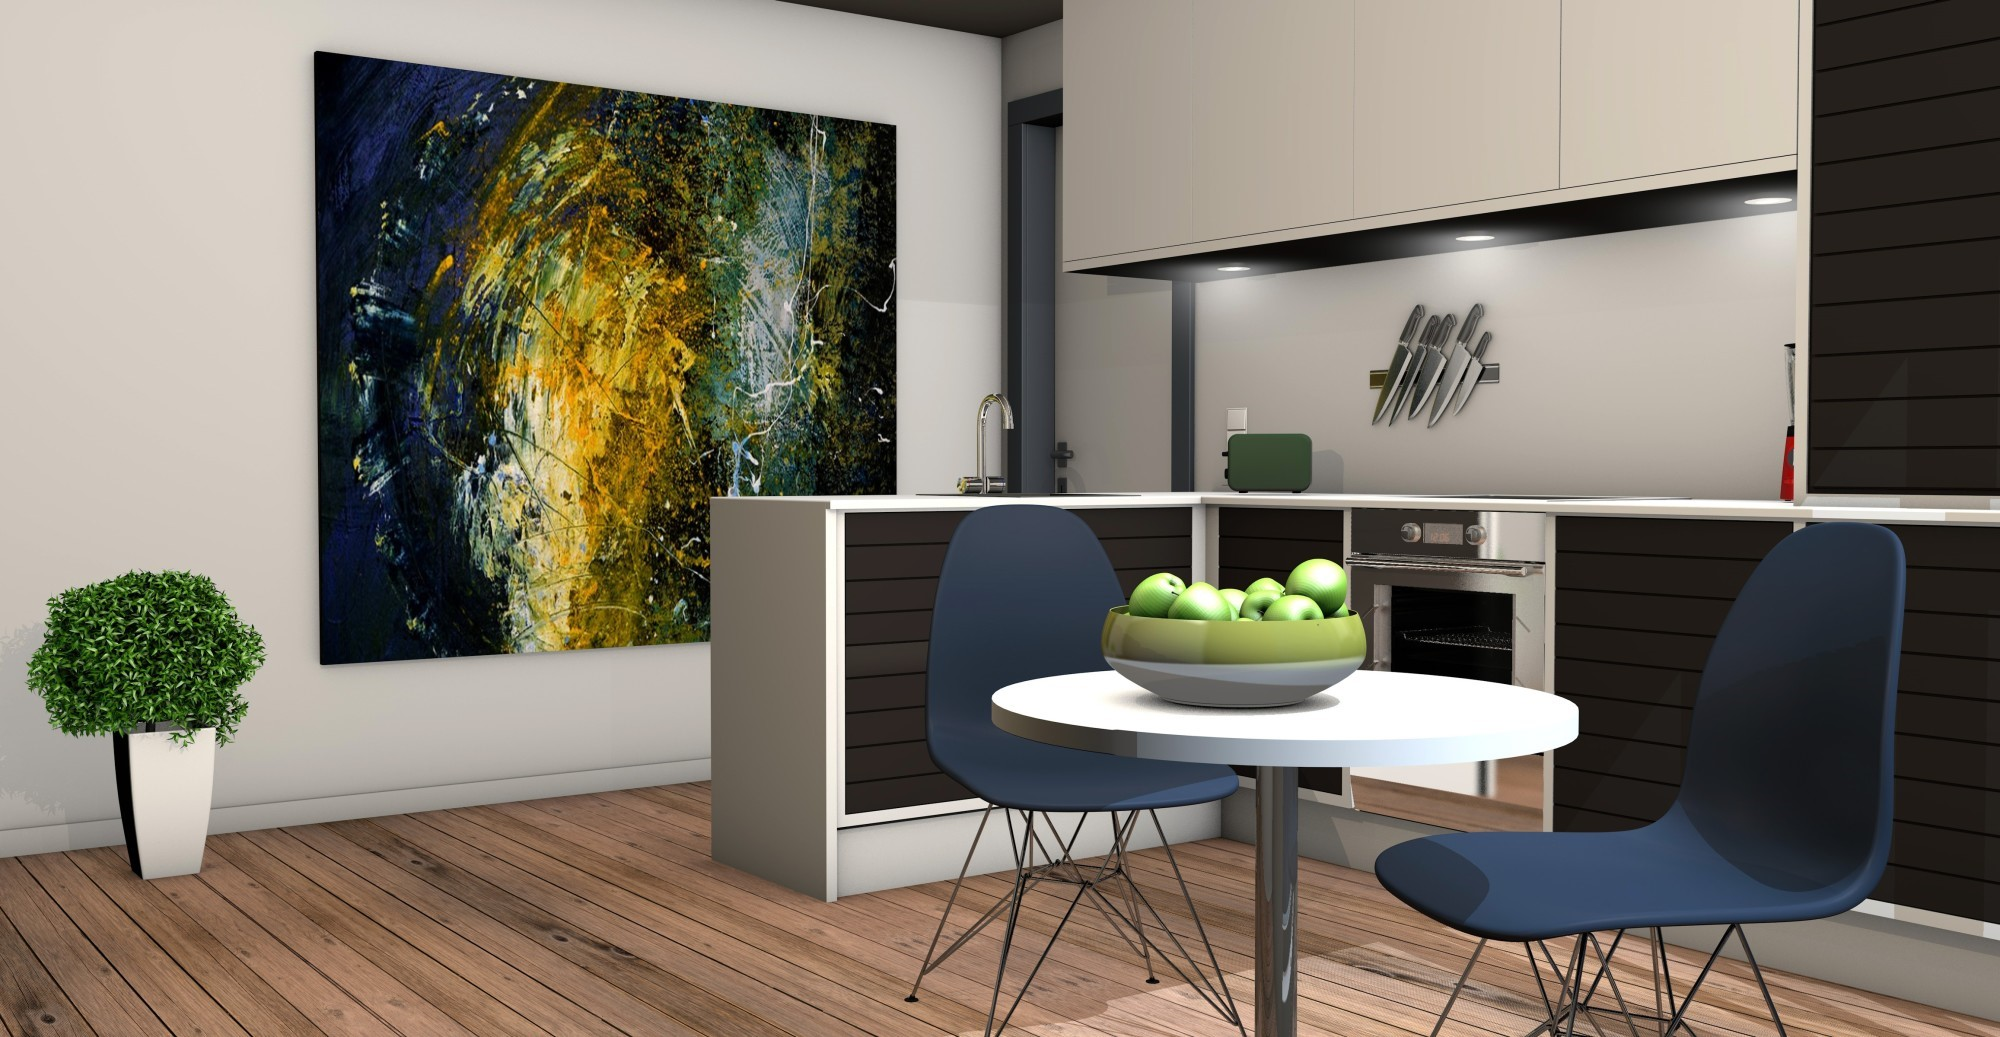 image - Use Virtual Interior Design to Reimagine Your Home